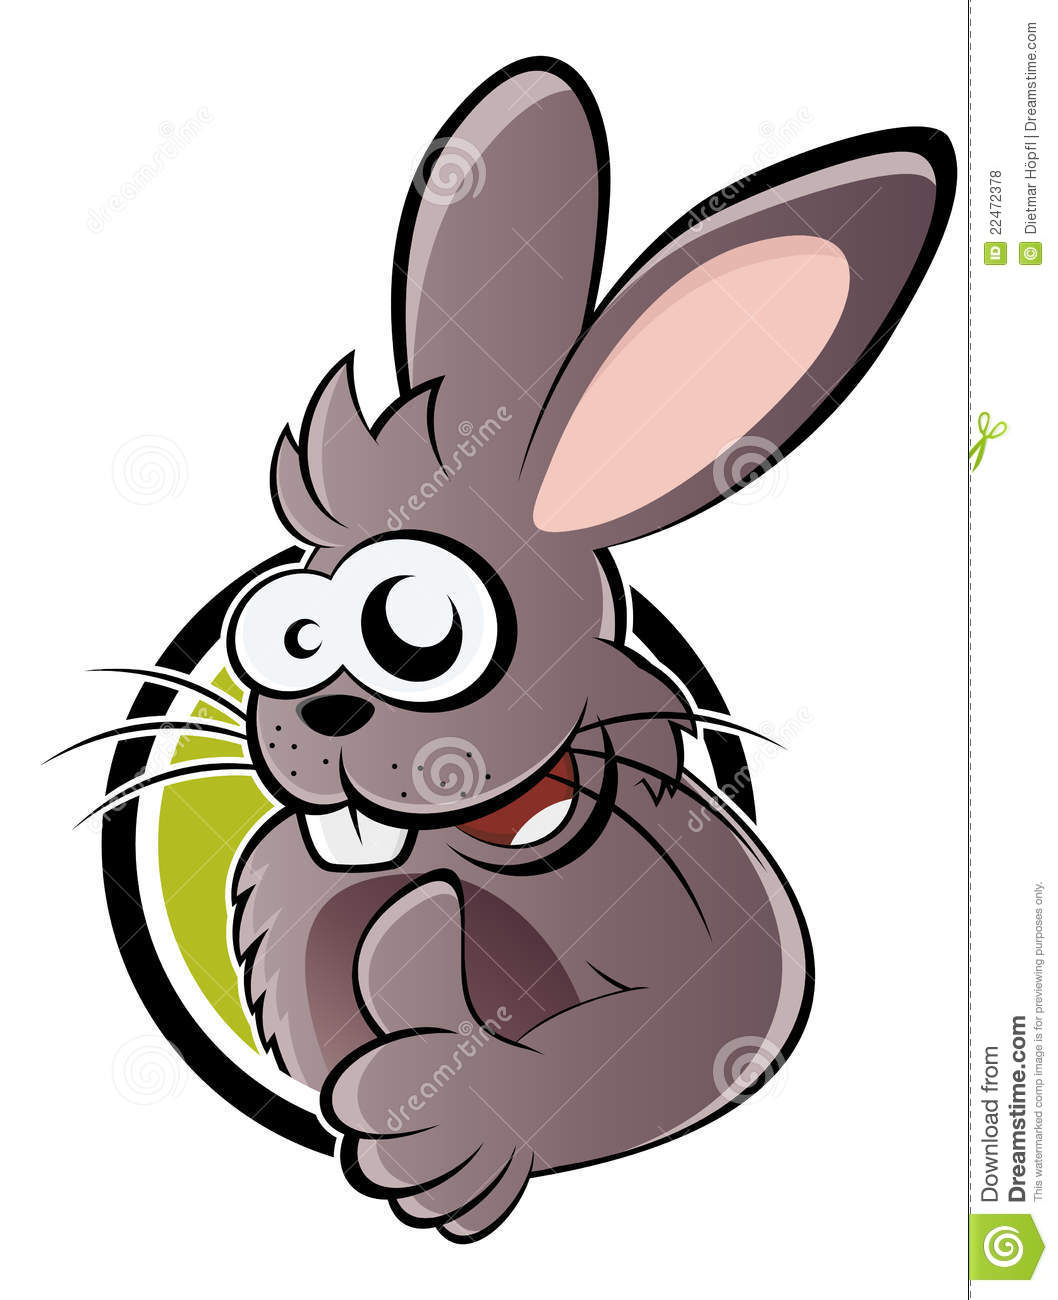 cartoon rabbit with thumb up royalty free stock photos free clipart of owls reading free clipart of owl in flight